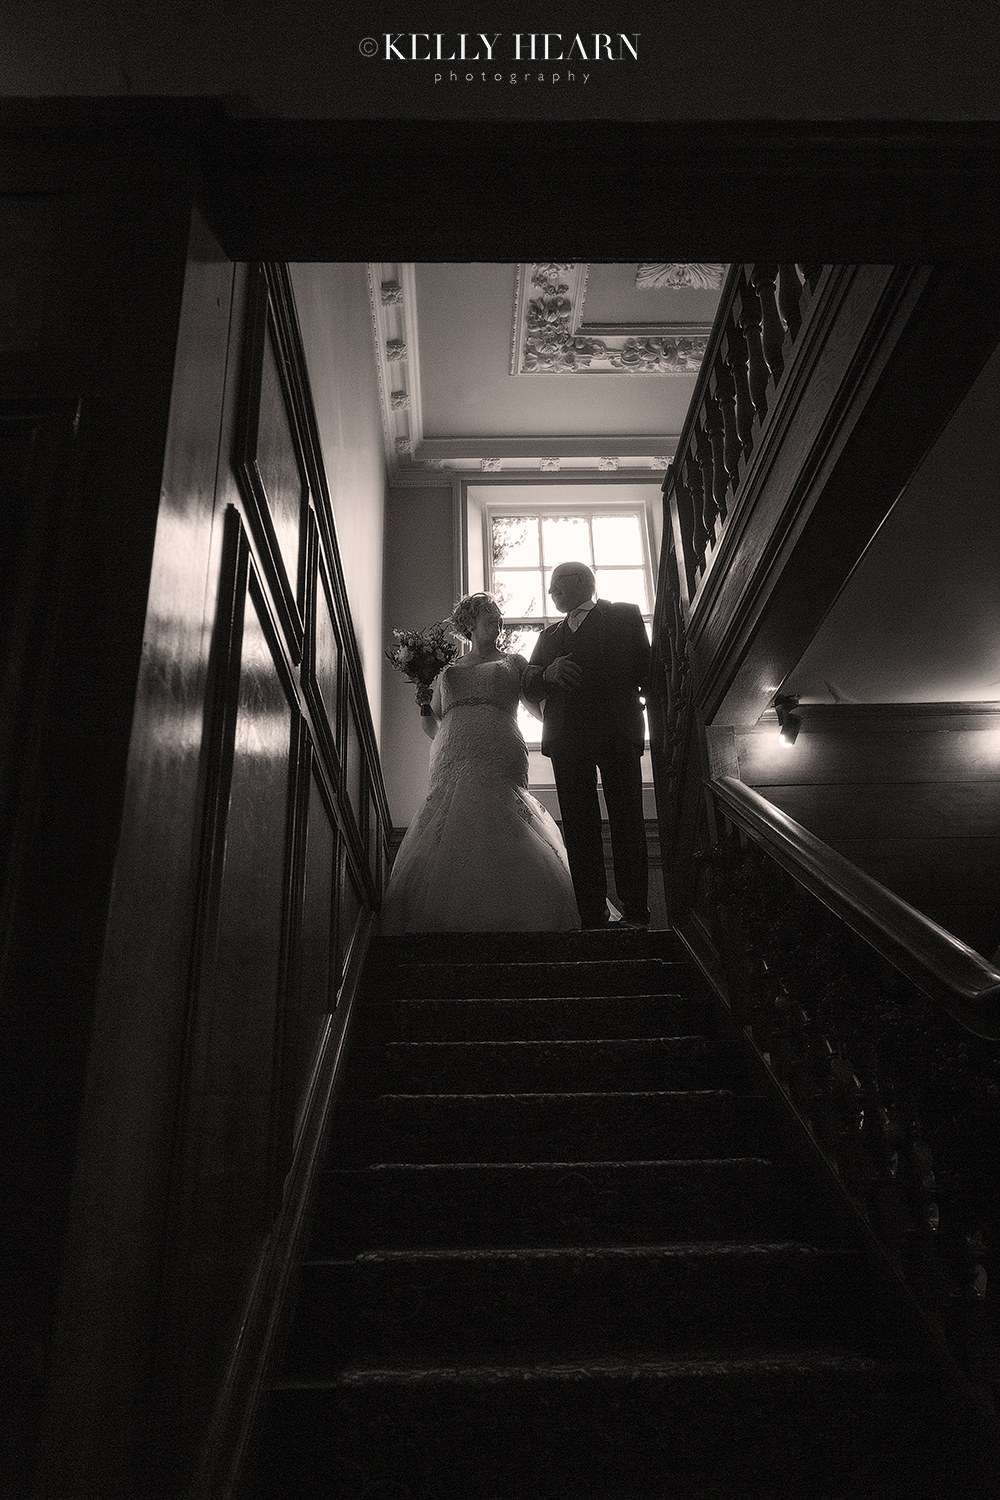 LEW_bride-and-father-stairs-black-and-white.jpg#asset:2770